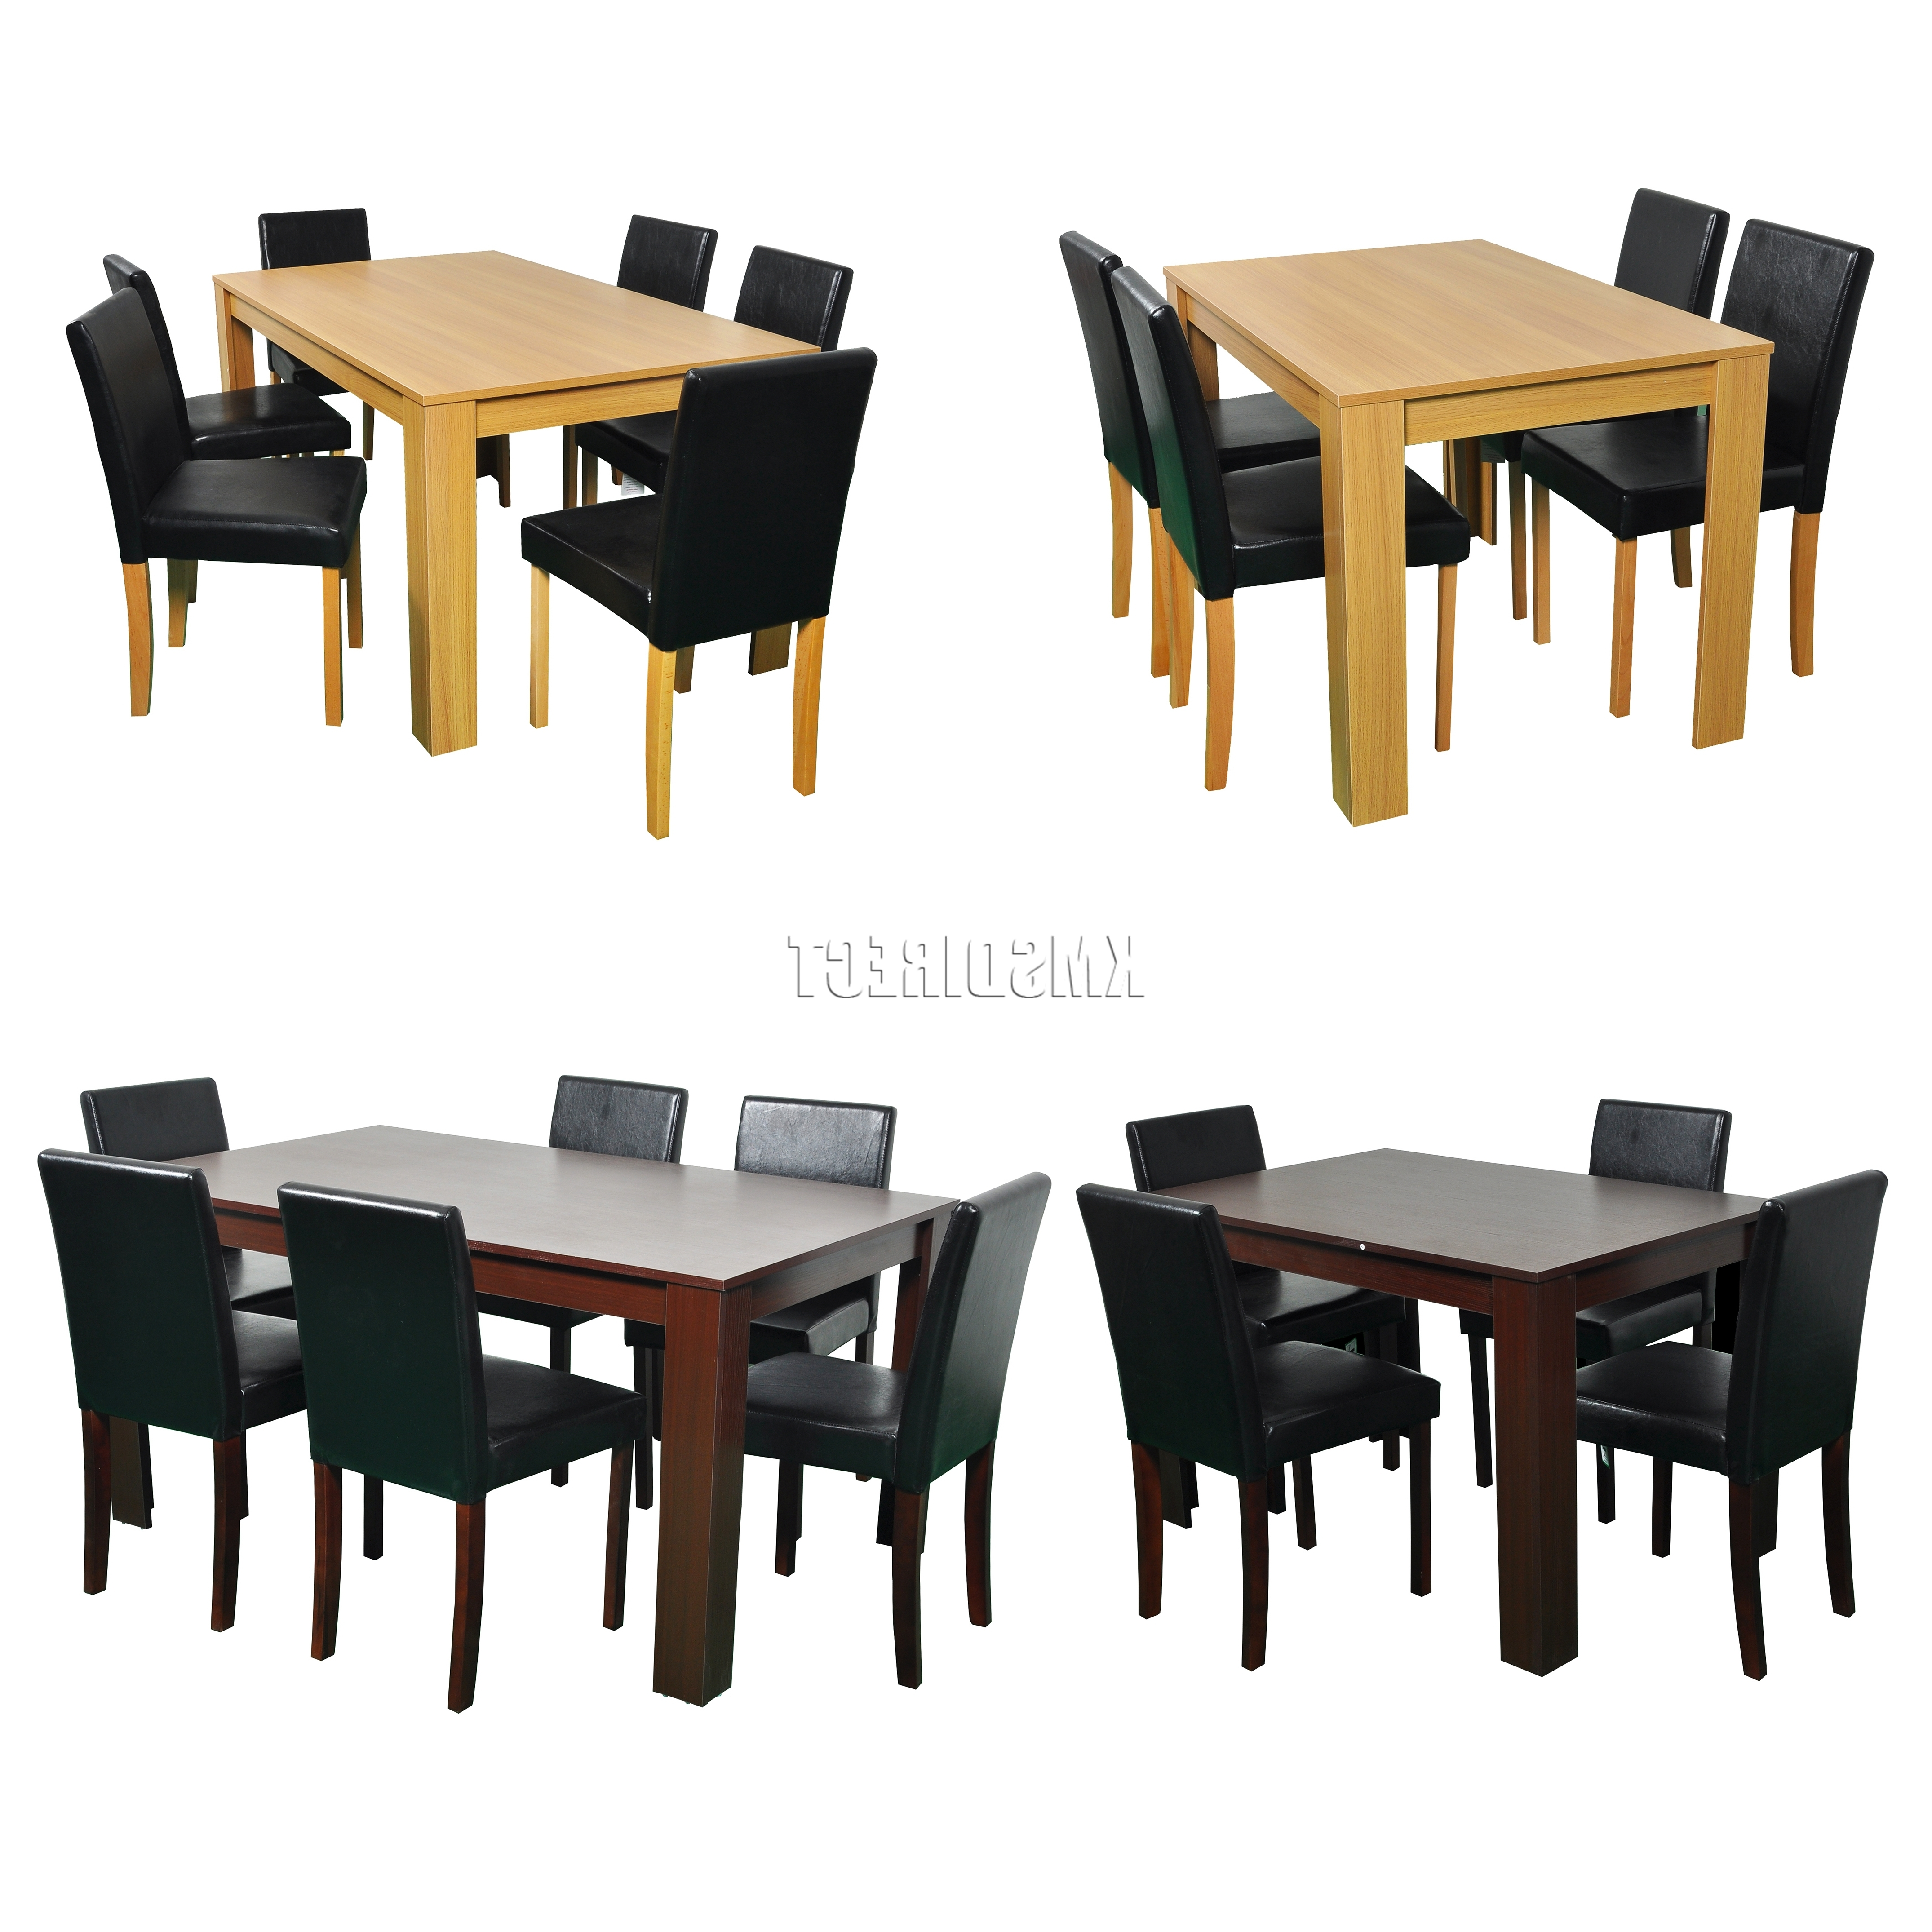 Famous Westwood Wooden Dining Table And 4 Or 6 Pu Faux Leather Chairs Set Regarding Wooden Dining Sets (View 17 of 25)